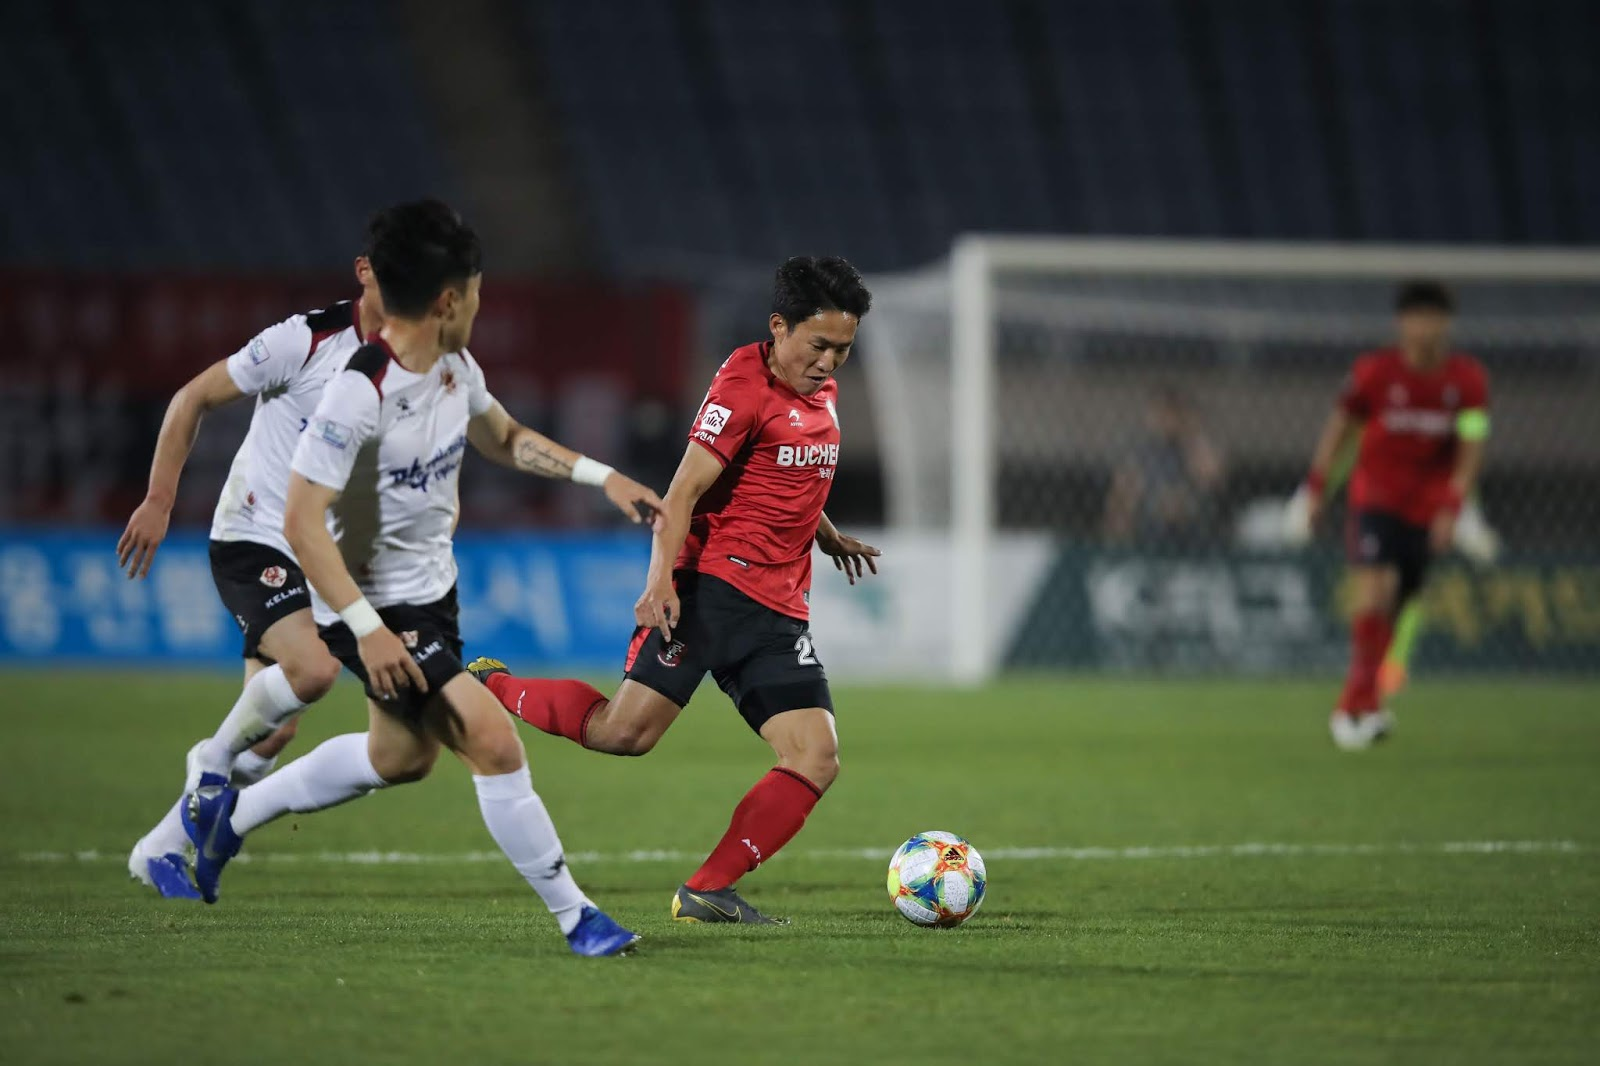 K league 2 Preview: Bucheon 1995 vs FC Anyang